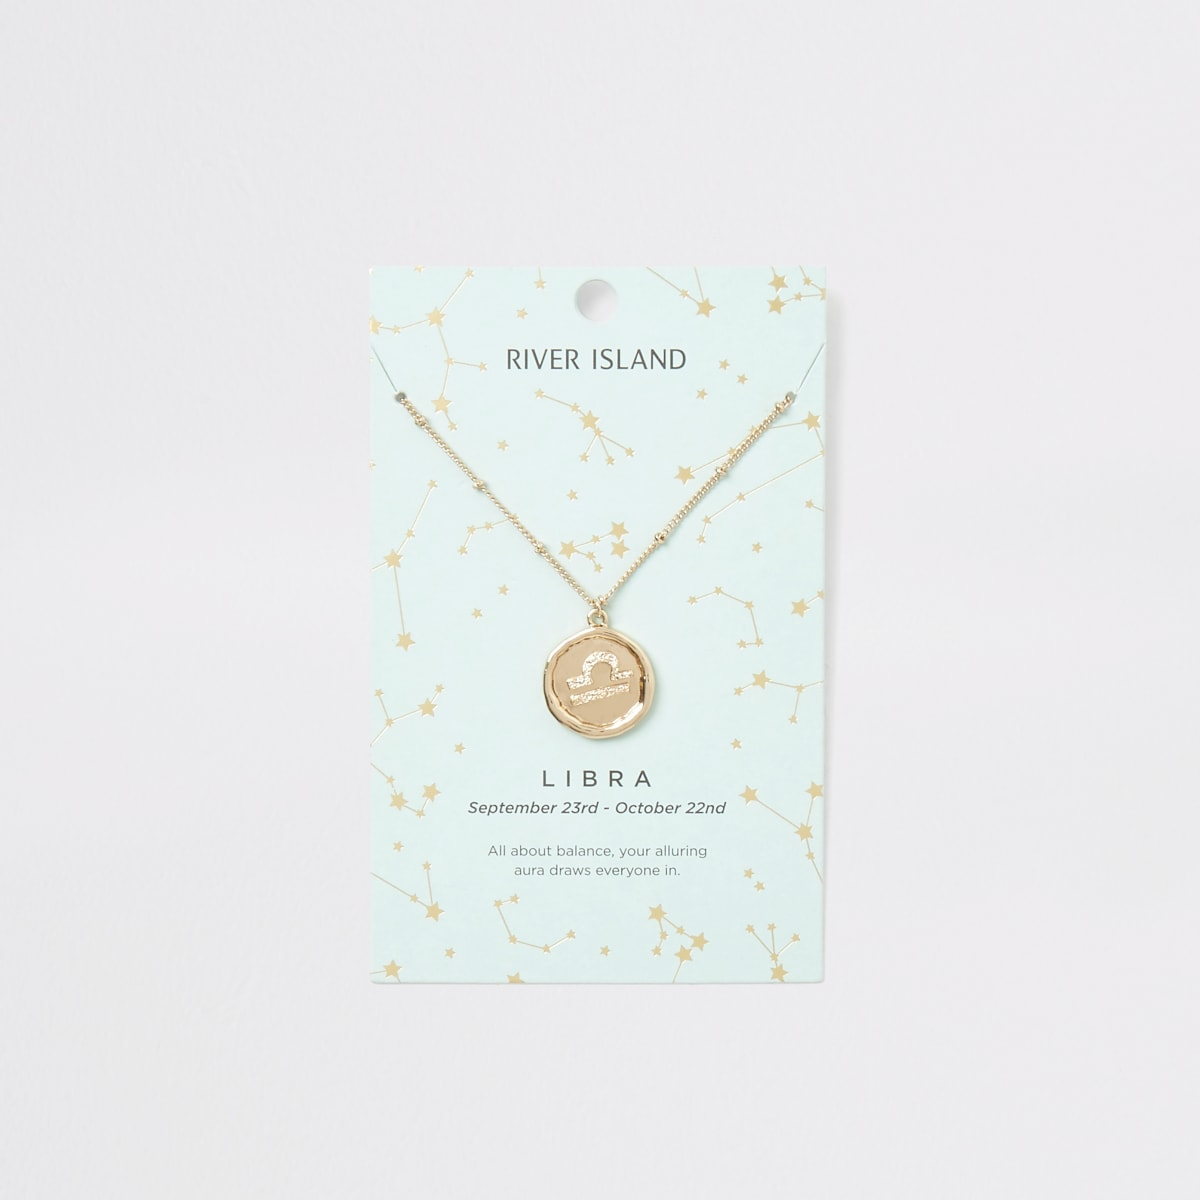 Libra zodiac sign gold colour necklace